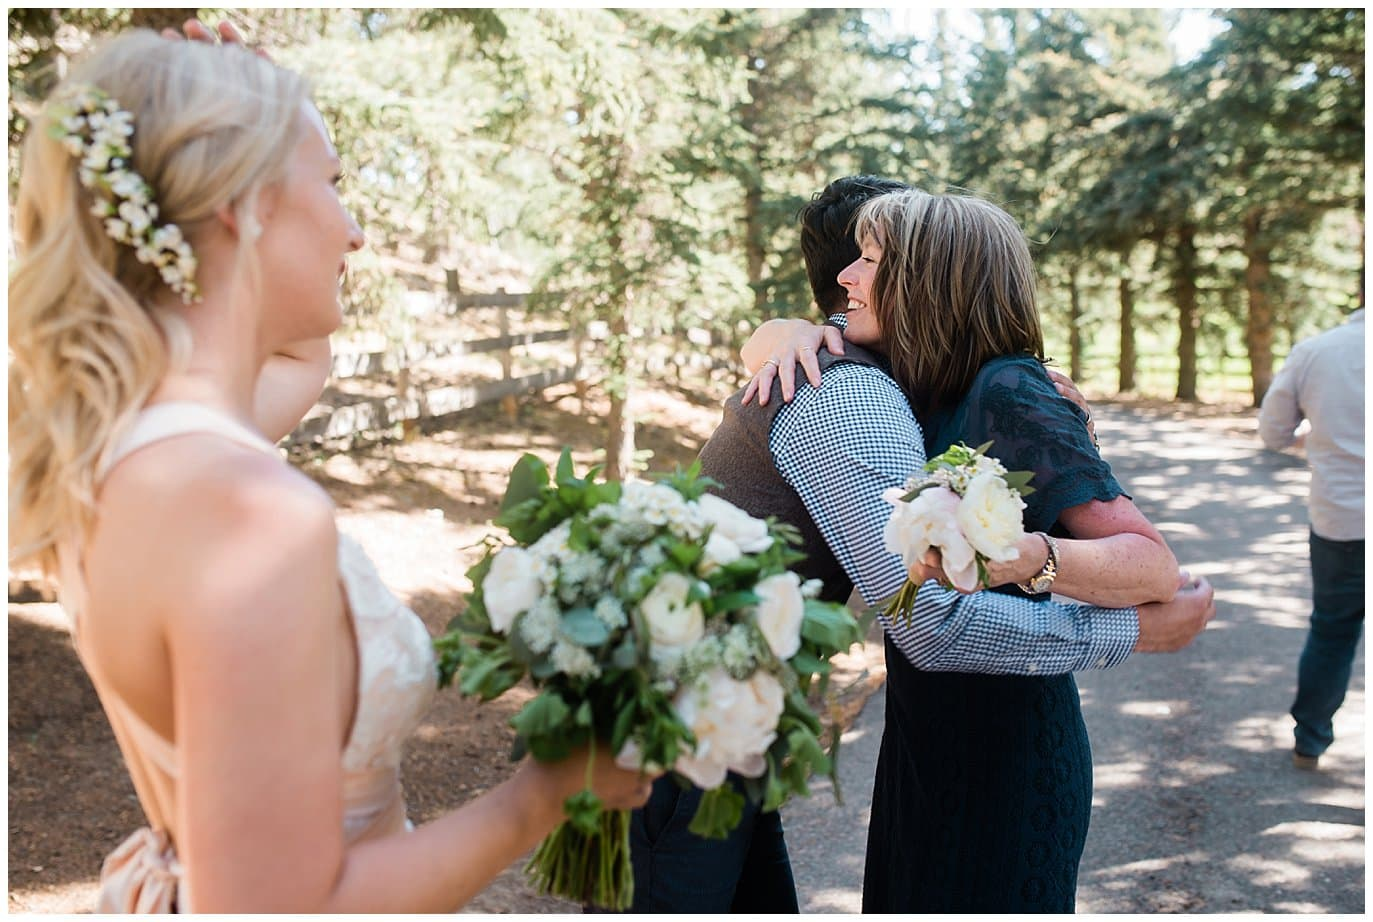 groom hugs mom after ceremony at Deer Creek Valley Ranch wedding by Conifer Wedding Photographer Jennie Crate Photographer